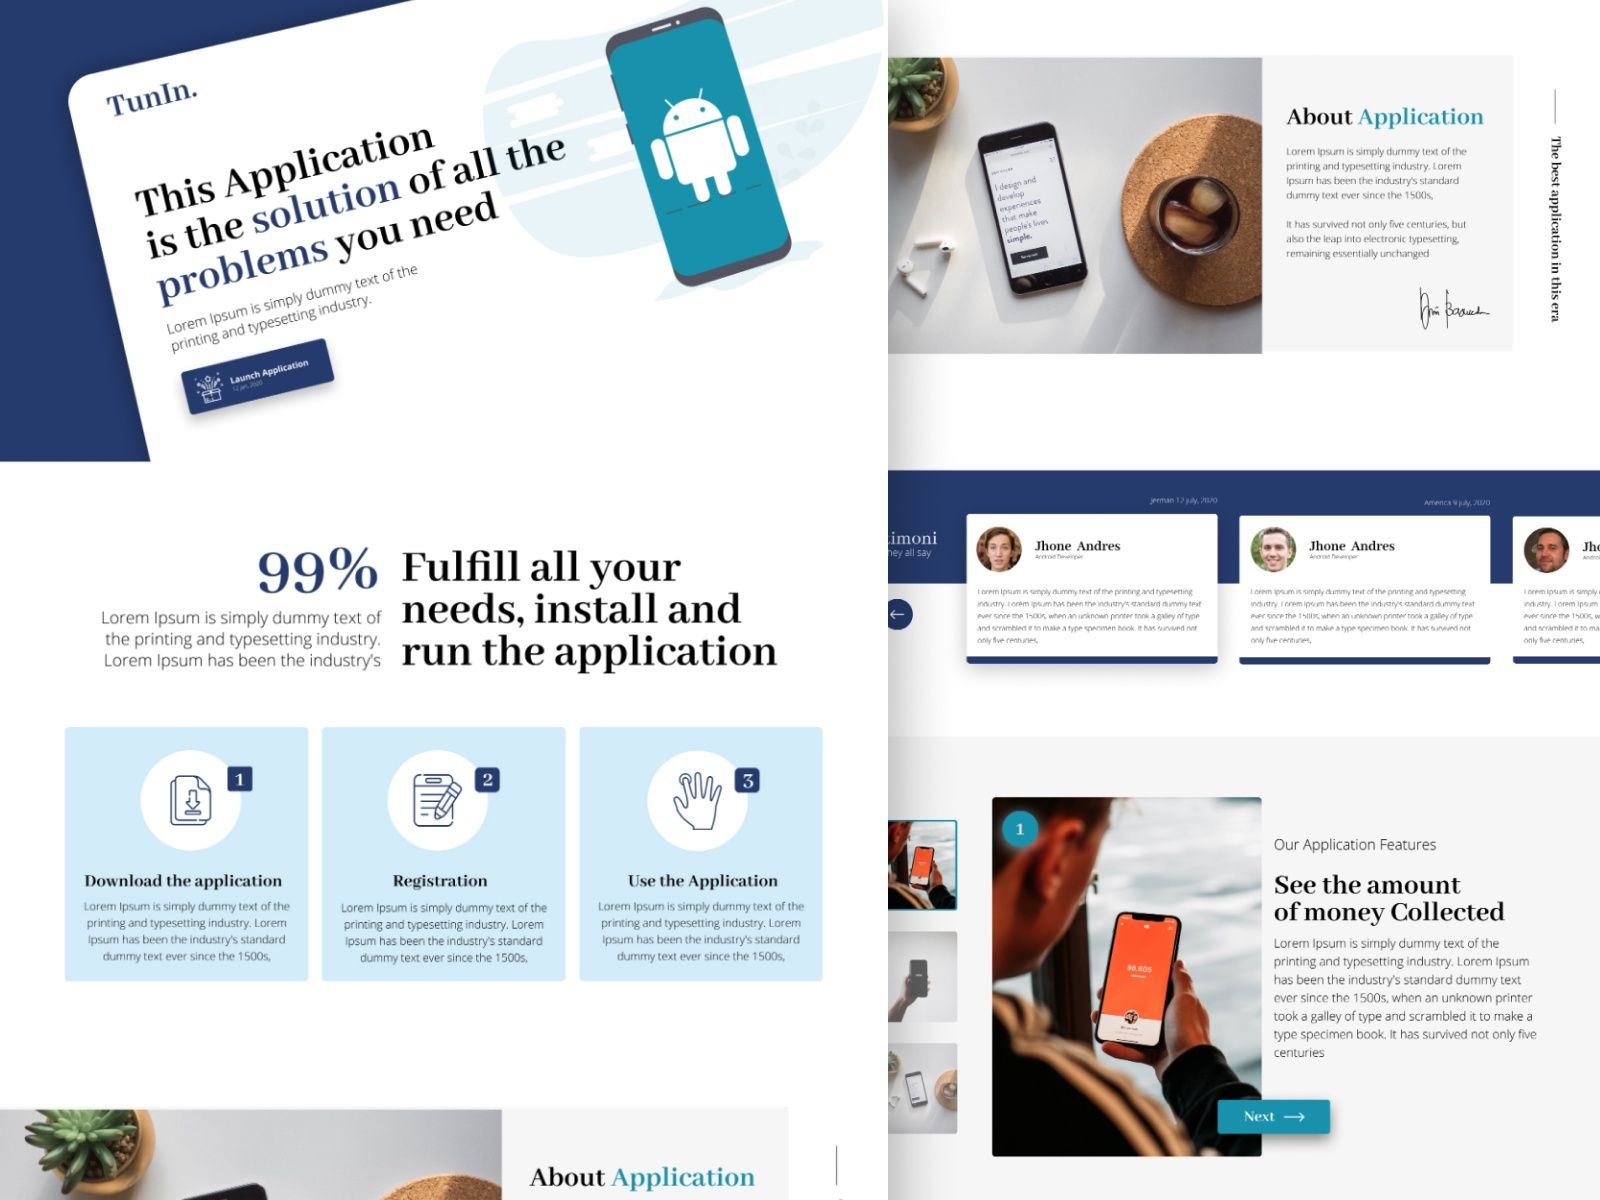 TunIn Application Launch Concept in 2020 Dribbble